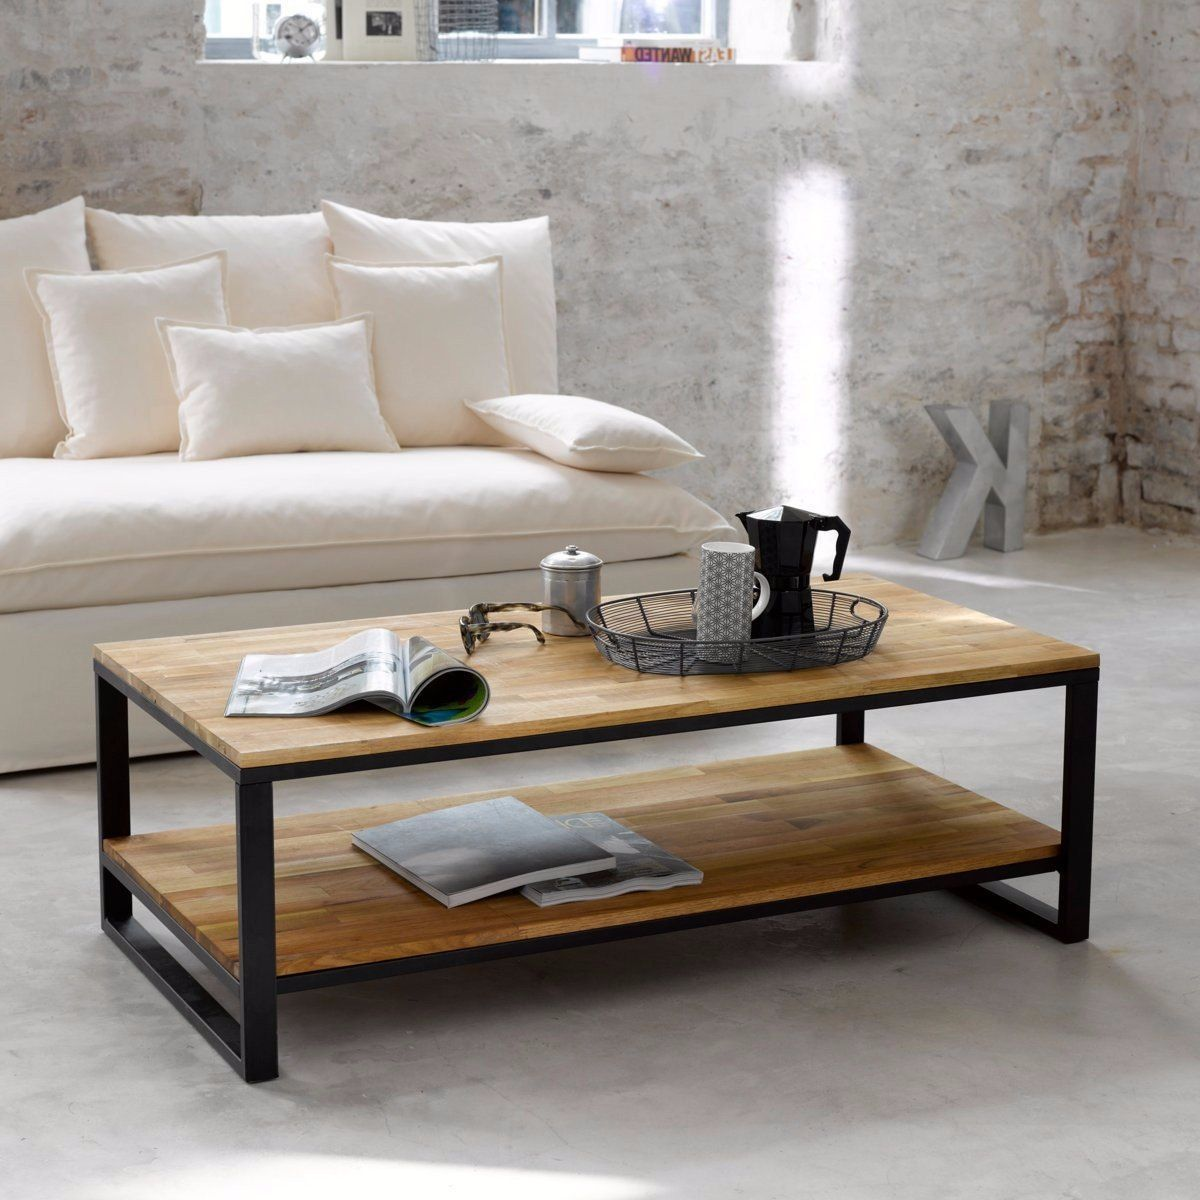 Pin By Rajat Chettri On Living Room Table Coffee Table Furniture Diy Coffee Table [ 1200 x 1200 Pixel ]